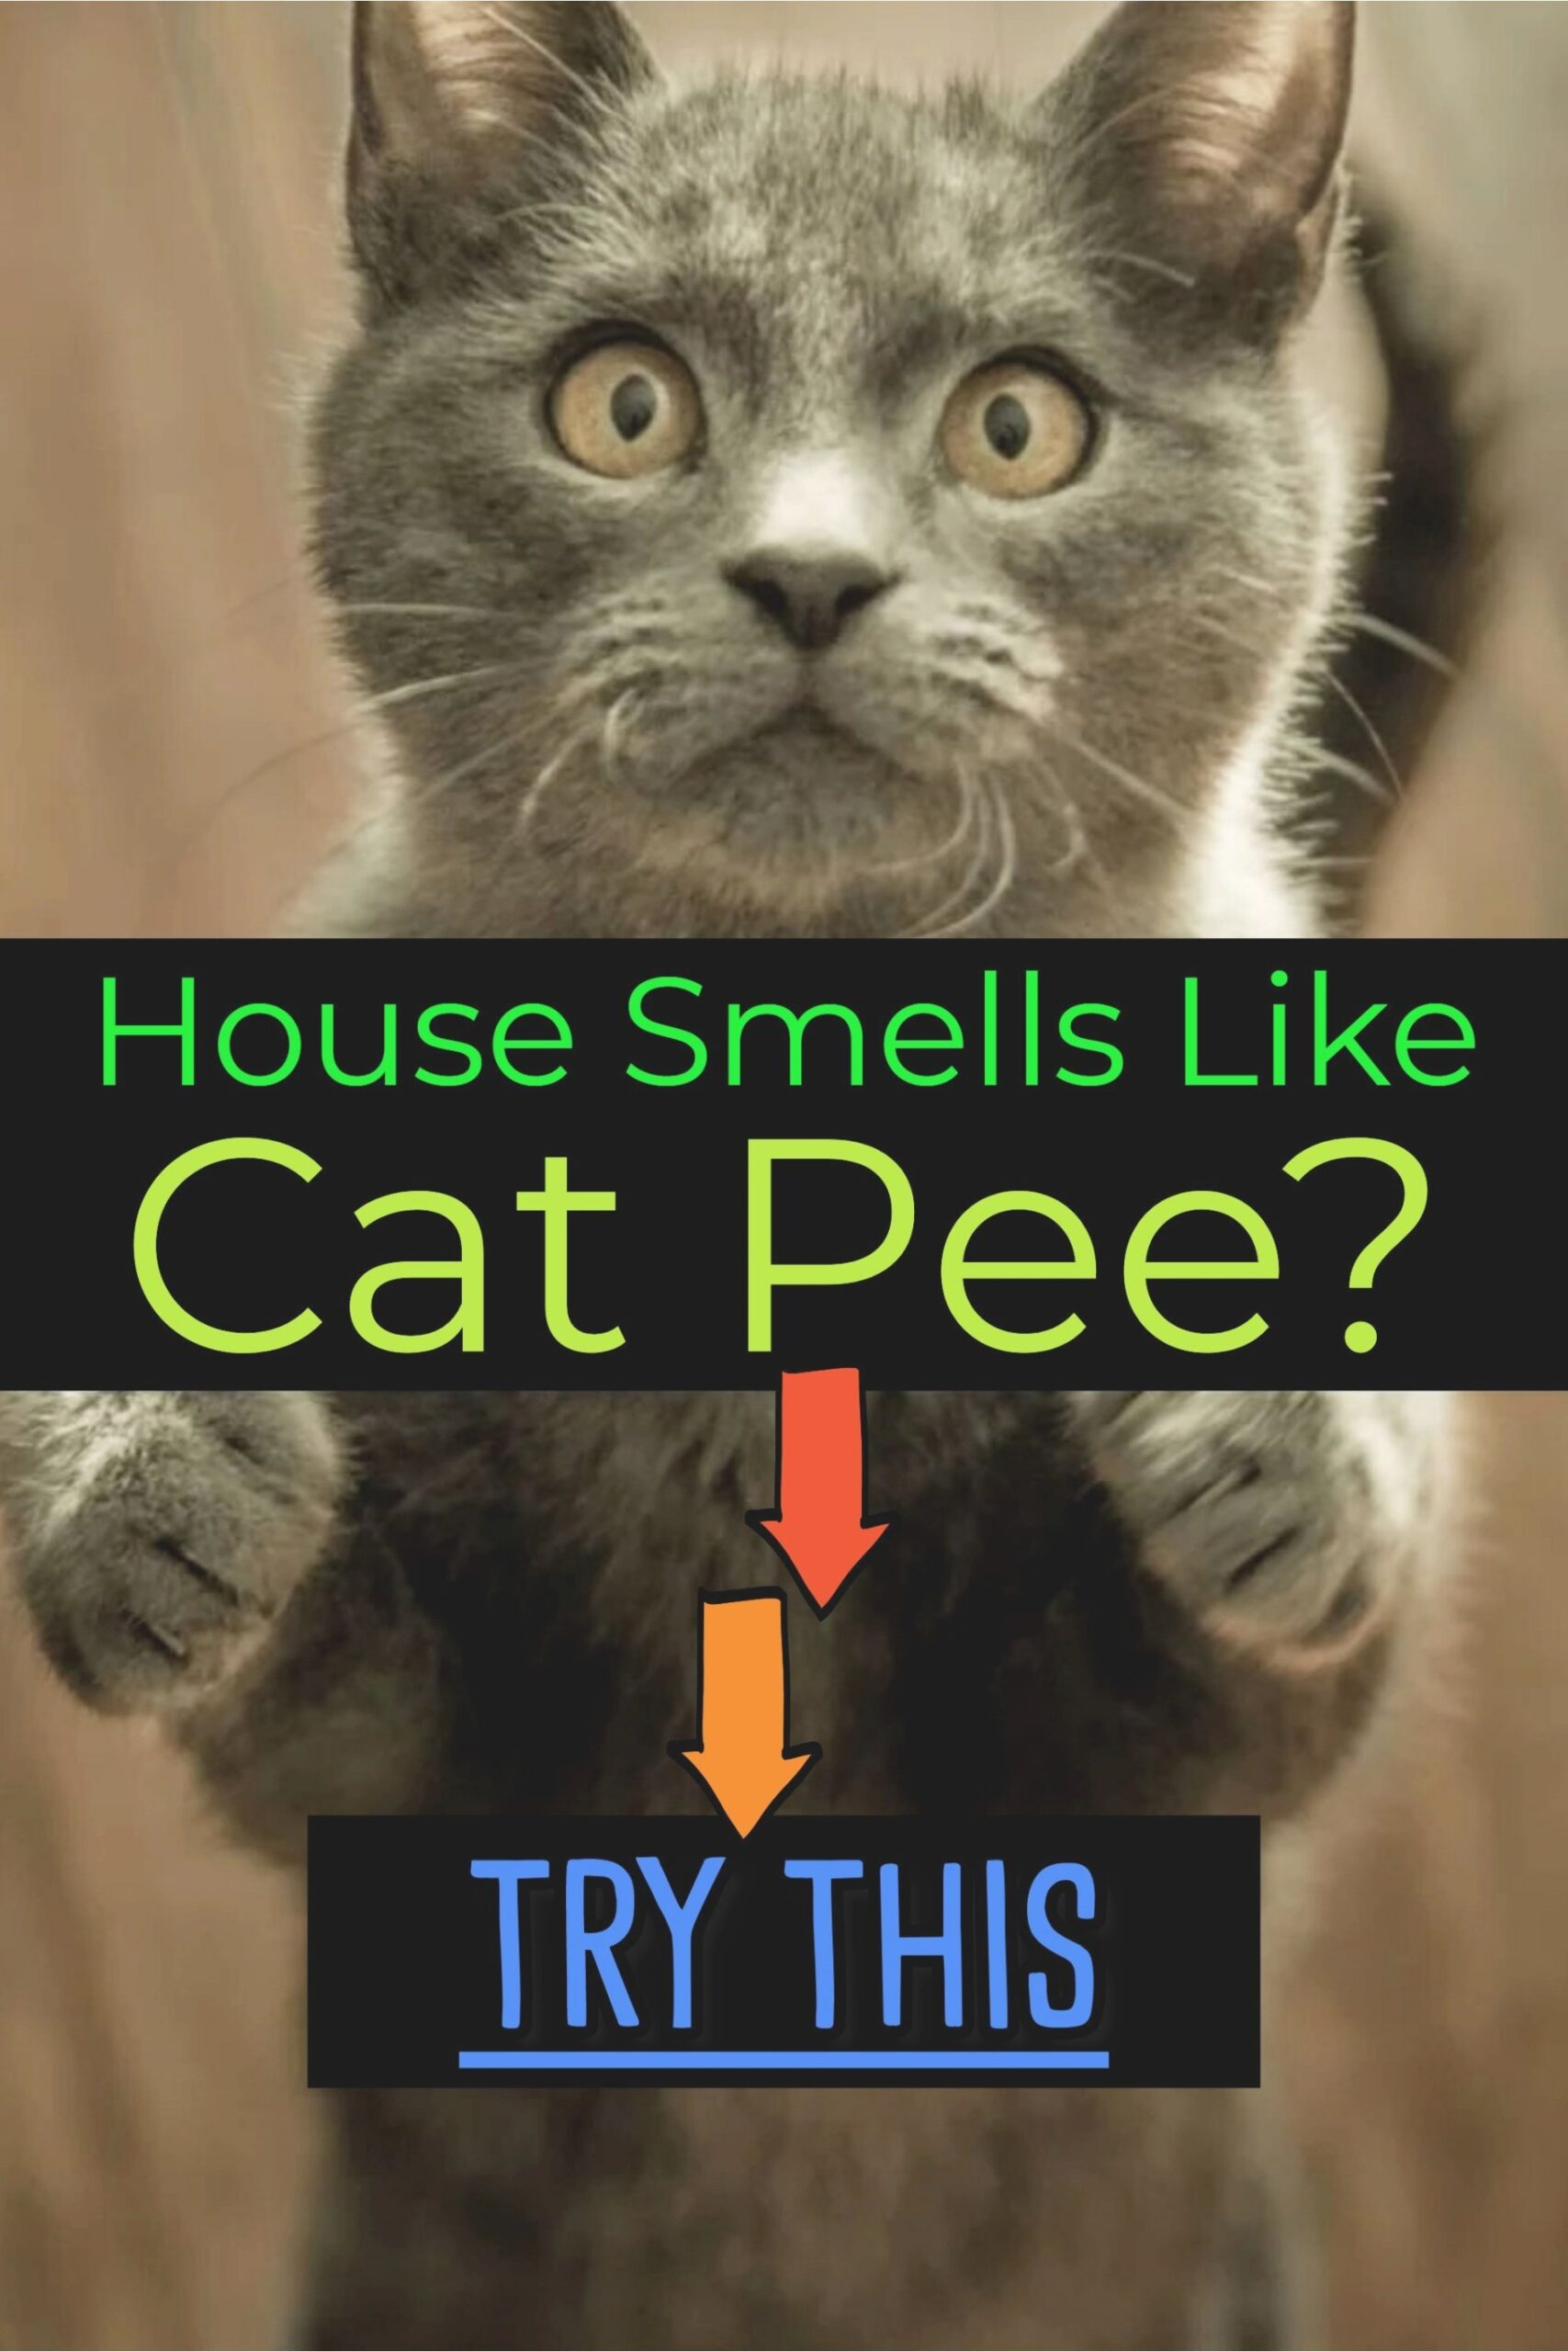 Cat Urine Stink? How To Get Rid Of Cat Pee Smell | Cat Pee throughout How To Get Urine Smell Out Of Clothes